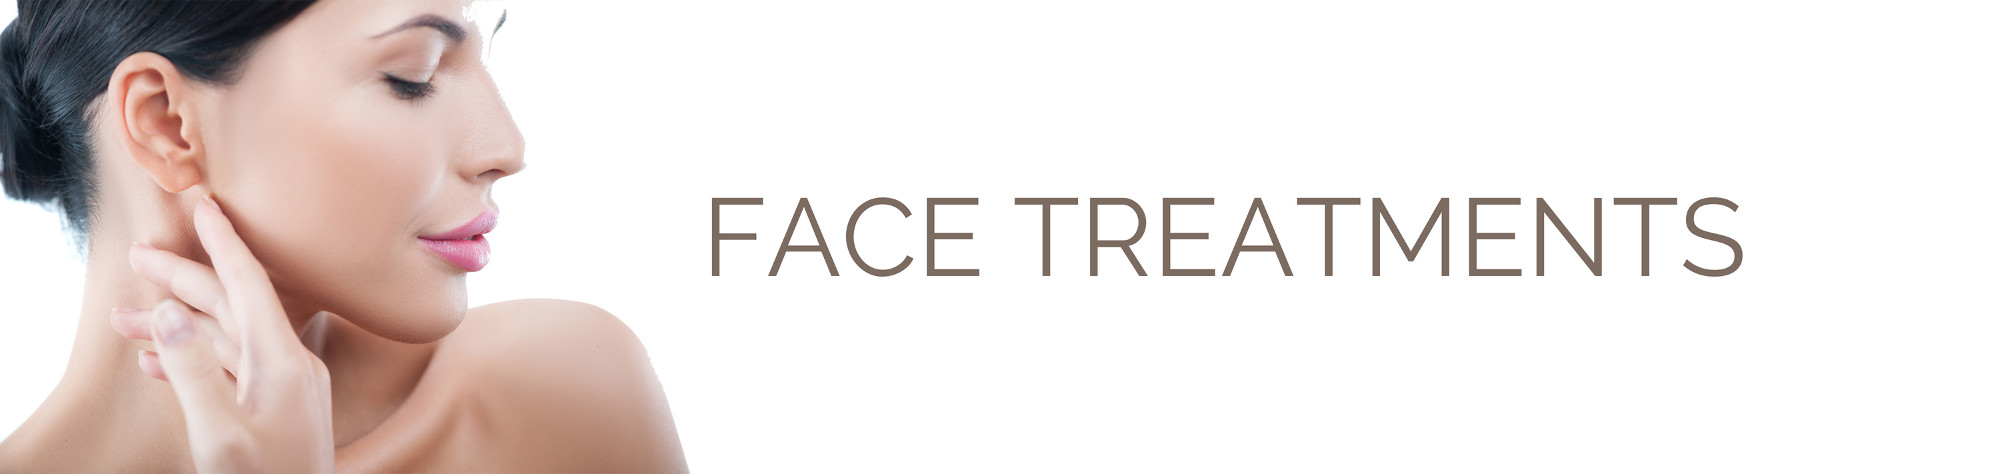 Face Treatments Banner